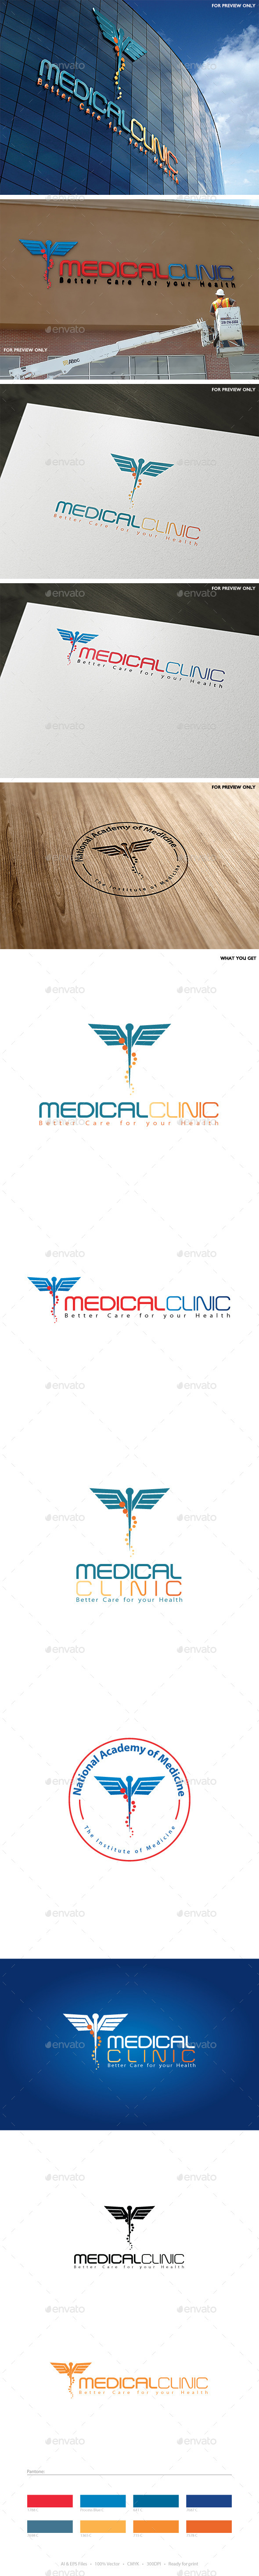 Medical Clinic Logo Template - Vector Abstract